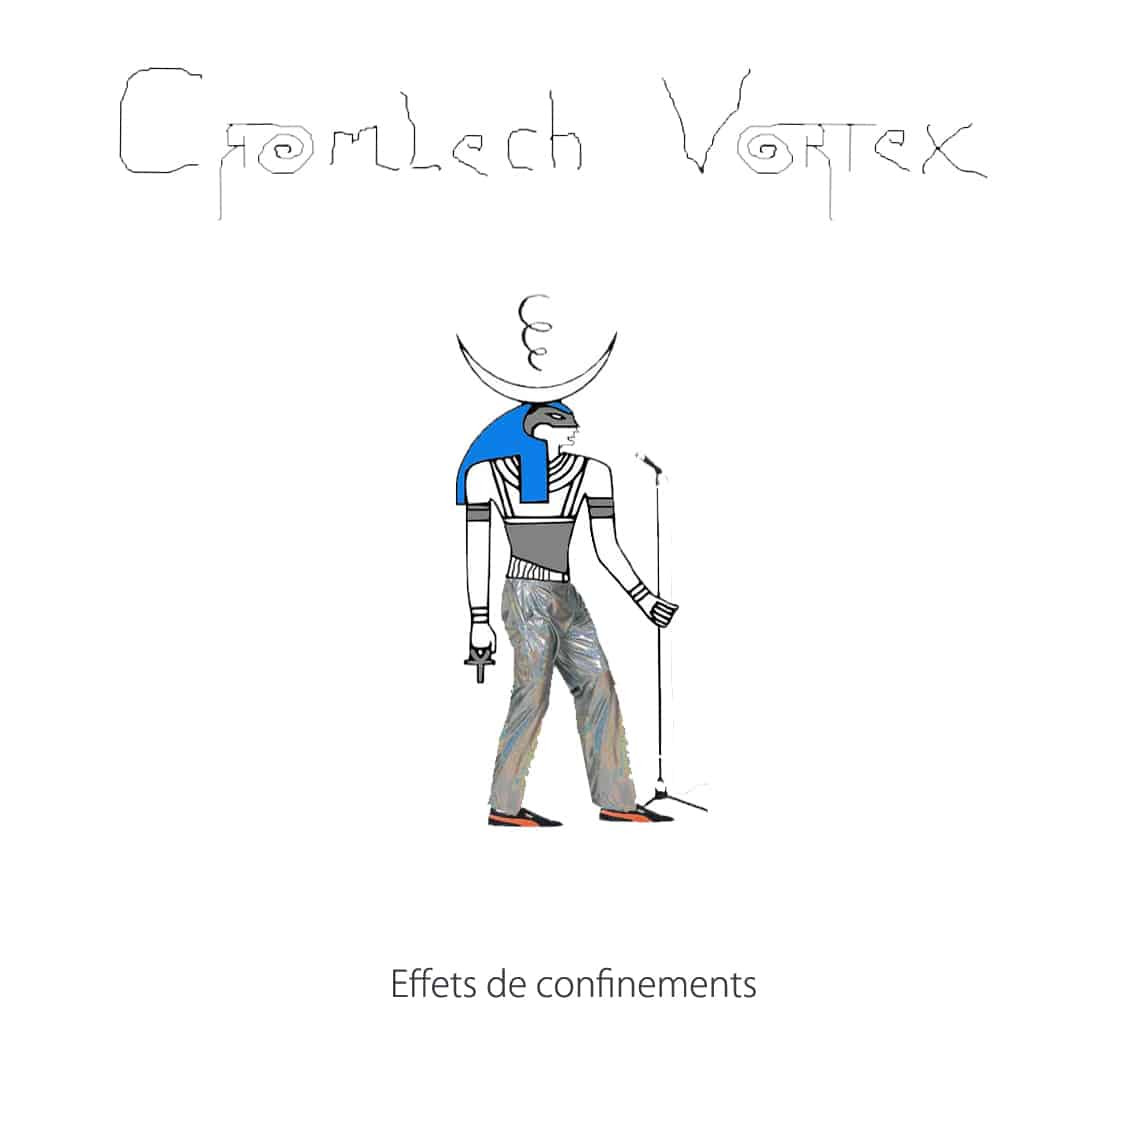 cromlech vortex france eclectic rock humour francais french humor